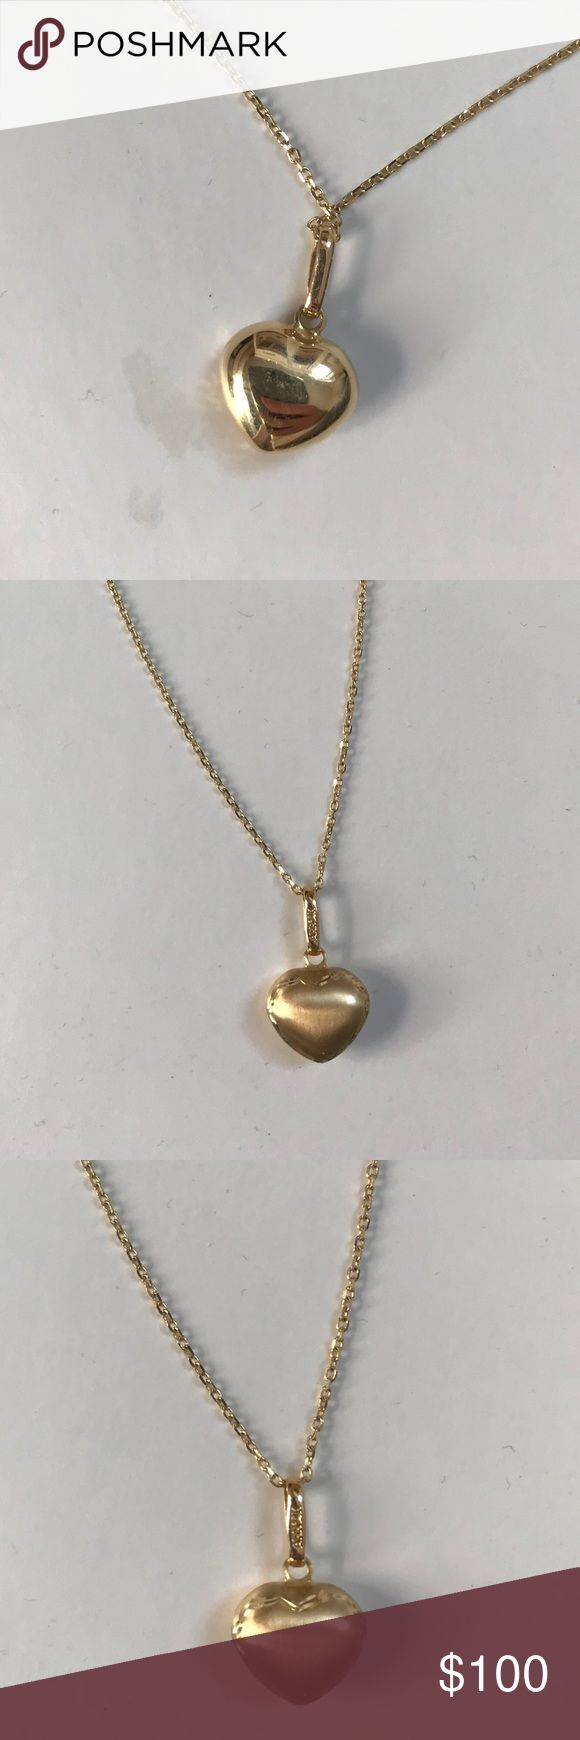 REAL GOLD HEART NECKLACE 14K gold beautiful heart necklace. Gold chain. I got it is a gift so the brand is unknown. Authentic gold!!!! Jewelry Necklaces